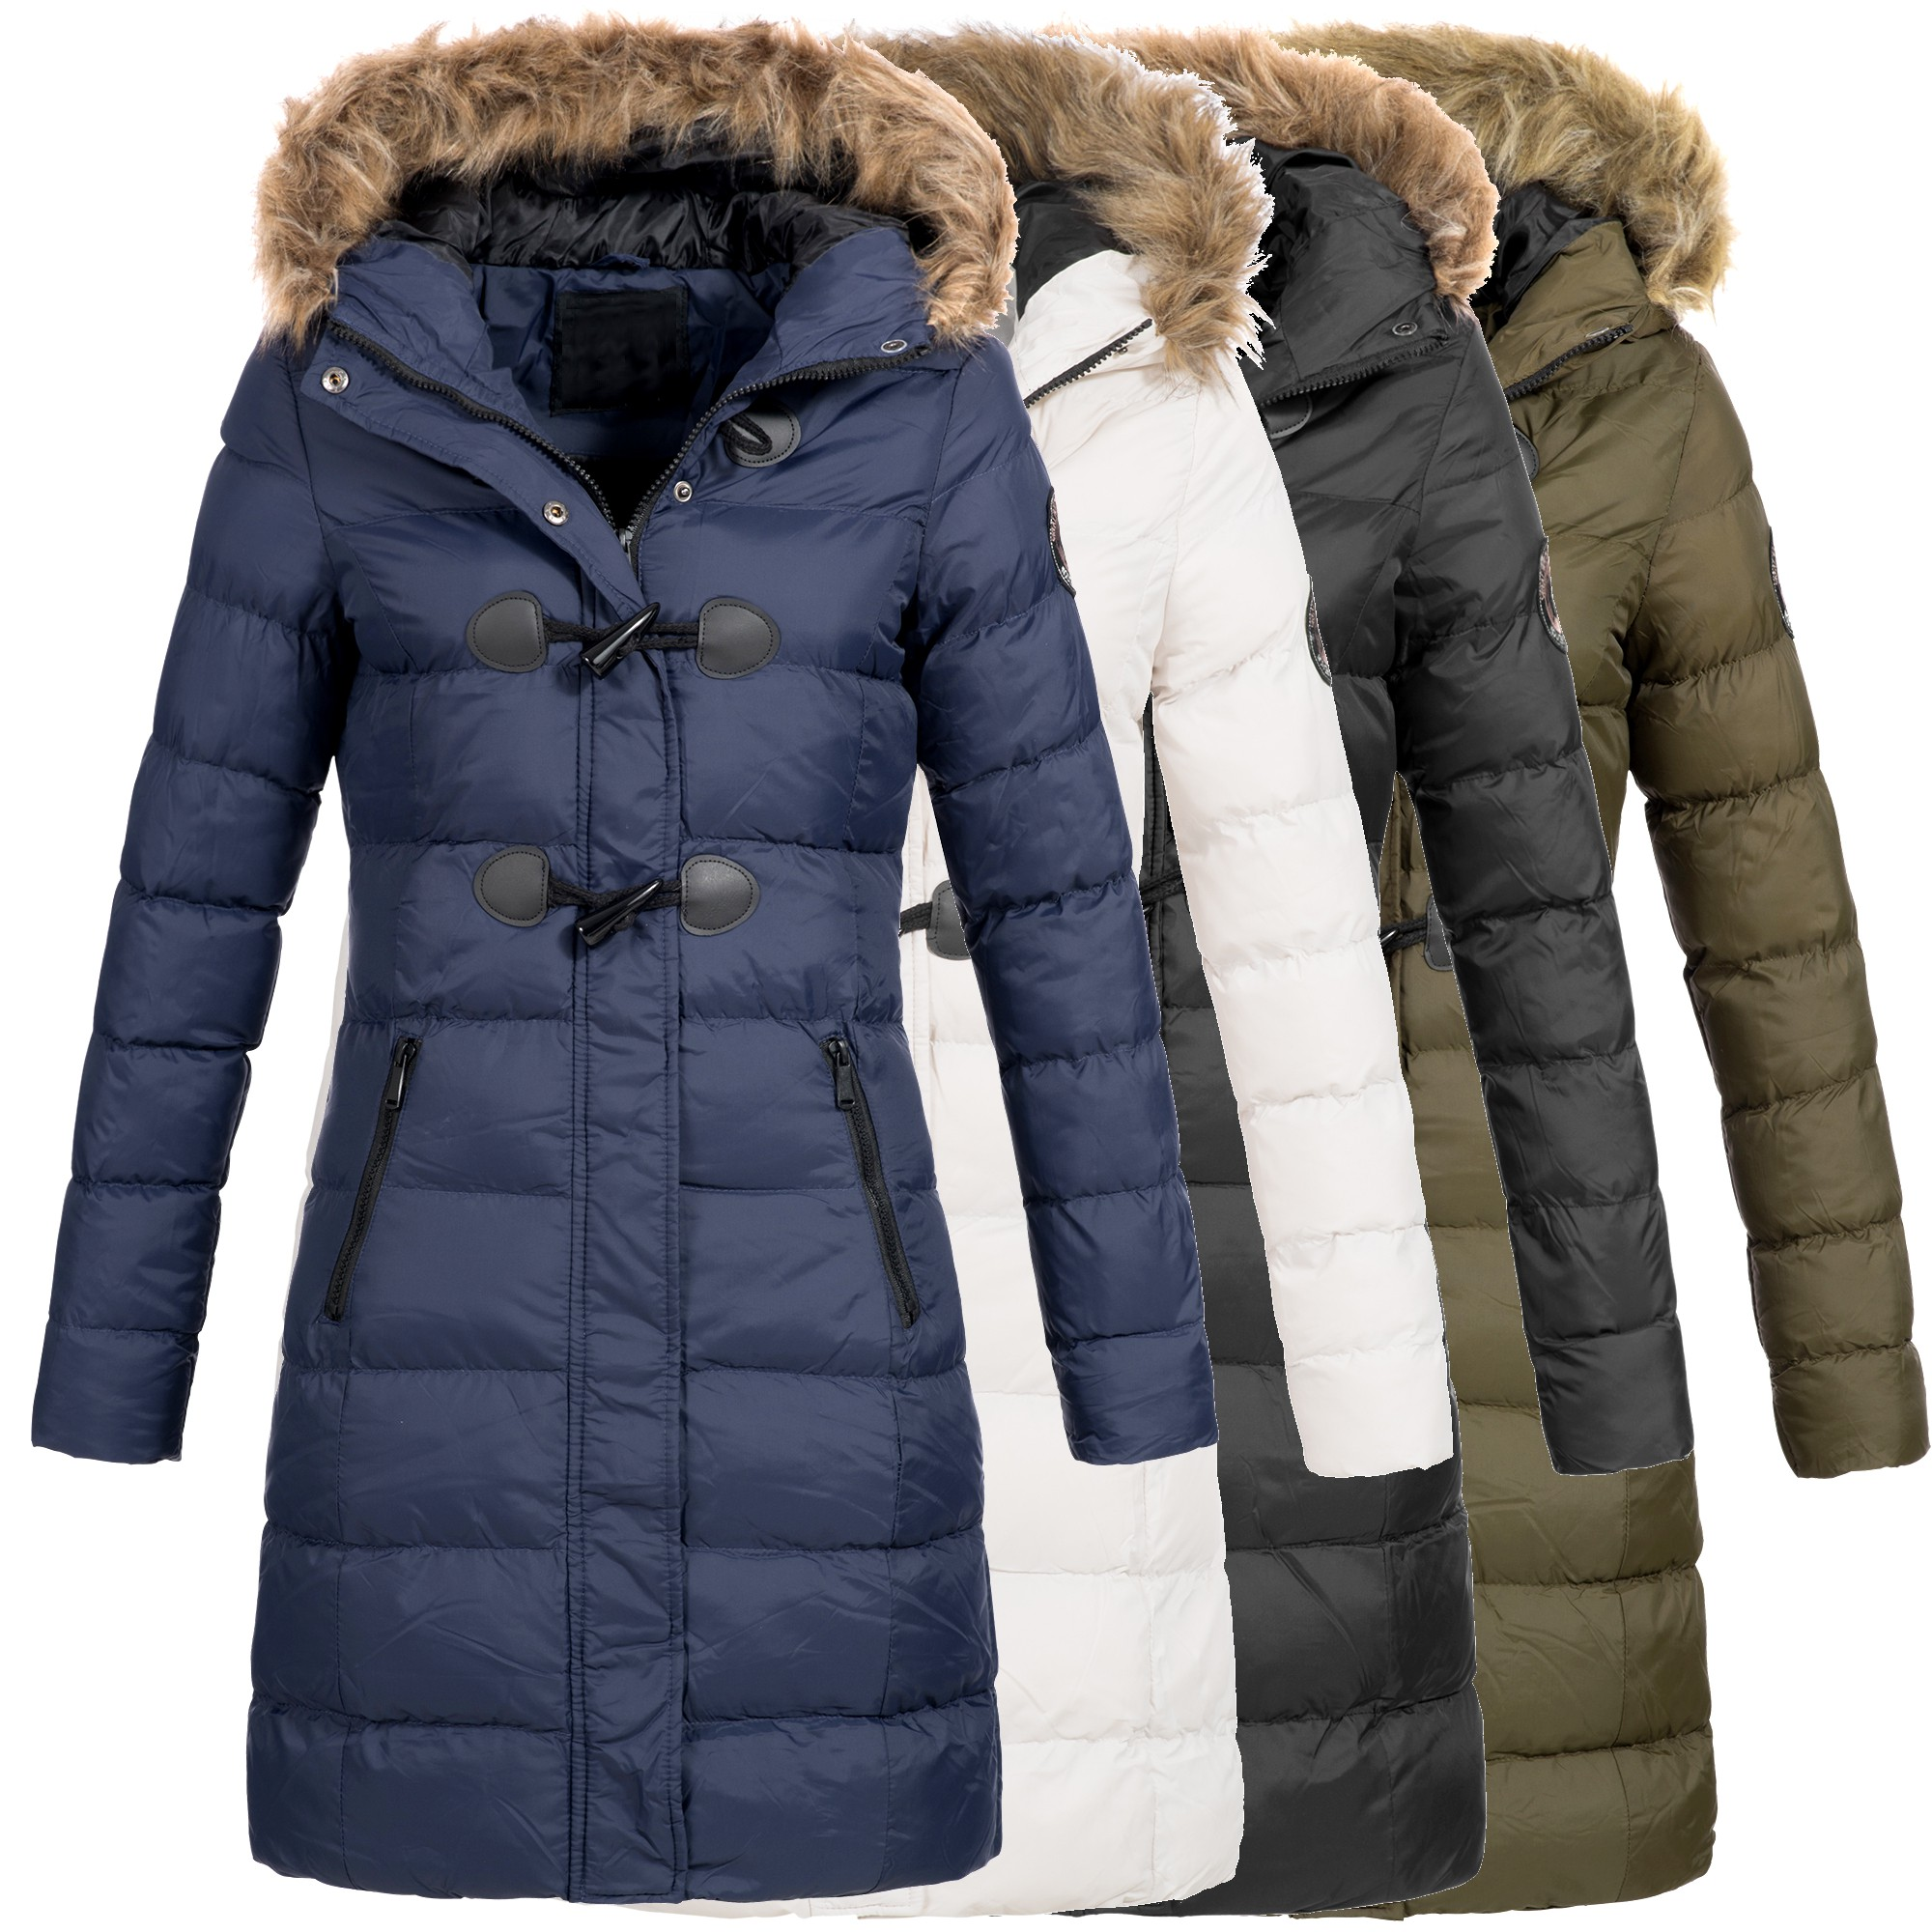 az fashion damen steppmantel winter mantel parka jacke warm s xxl az29 ebay. Black Bedroom Furniture Sets. Home Design Ideas